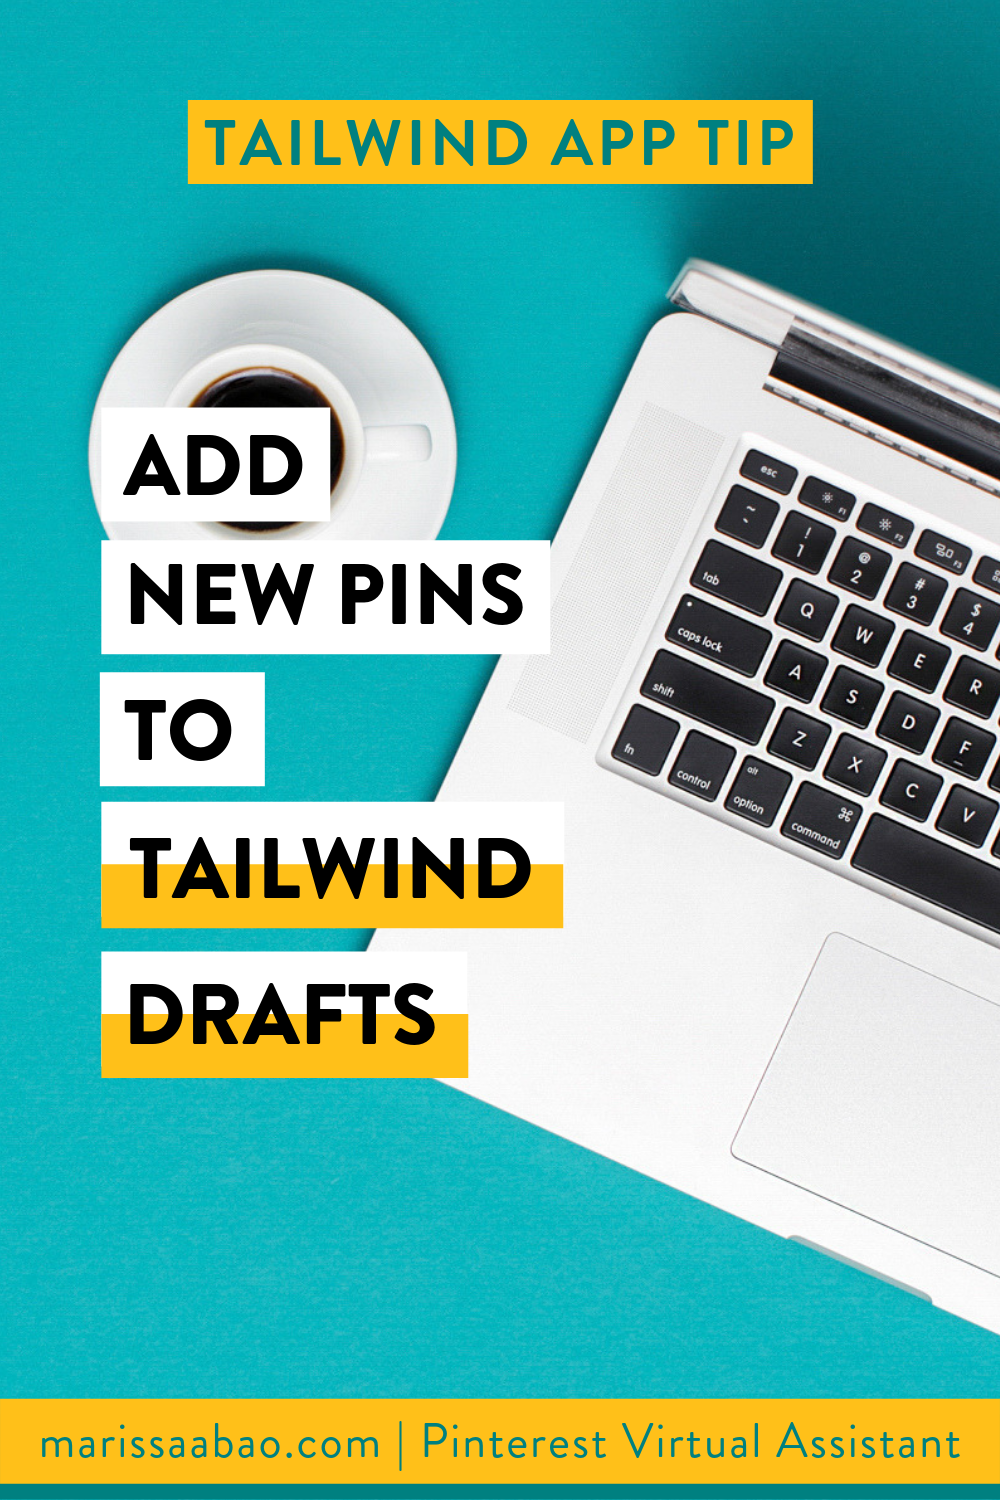 Tailwind App Tip: Add New Pins to Tailwind Drafts - #tailwindapp #virtualassistant #pinterestvirtualasistant #pinterestva #pinterestmarketing